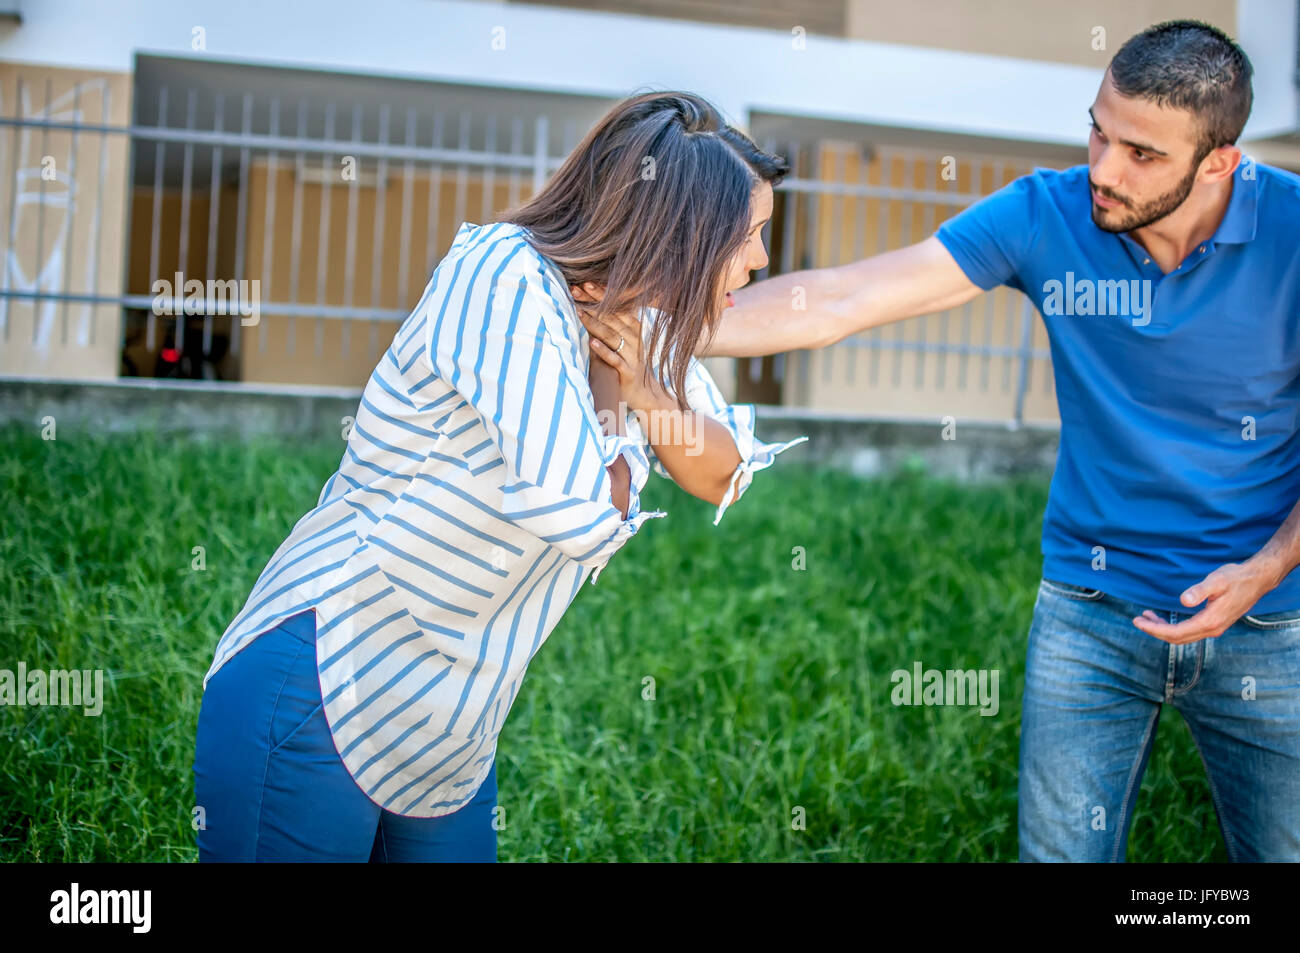 guy trying to help a girl while she's choking - Stock Image